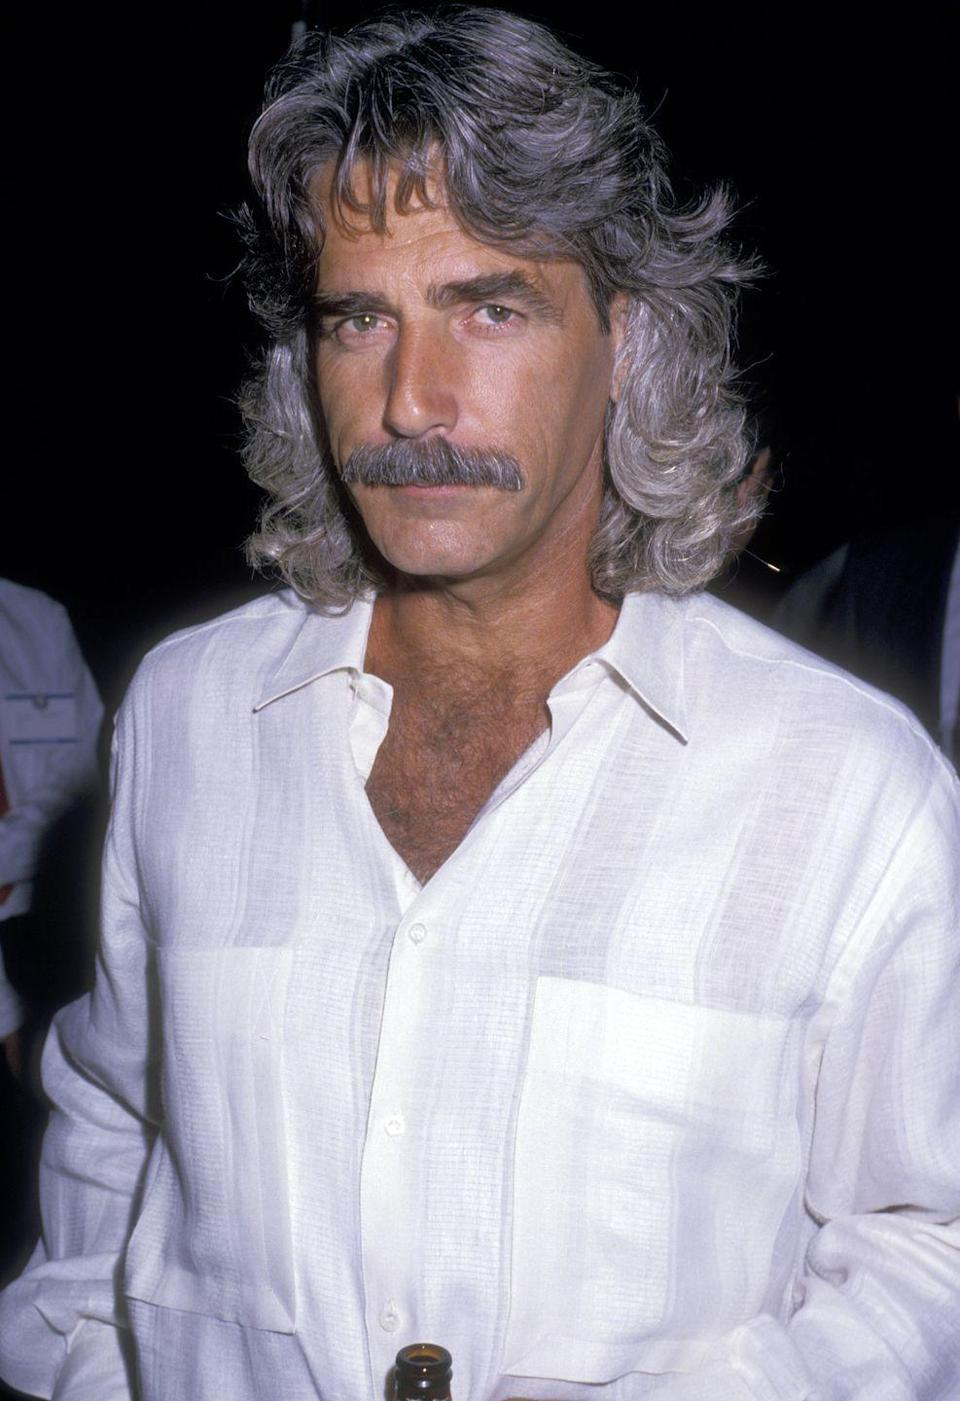 <p>Sam Elliott has been playing Hollywood's tough guy for years, most recently in <em>A Star is Born</em>. But back in 1987, the actor was almost unrecognizable with a long curly mane. </p>